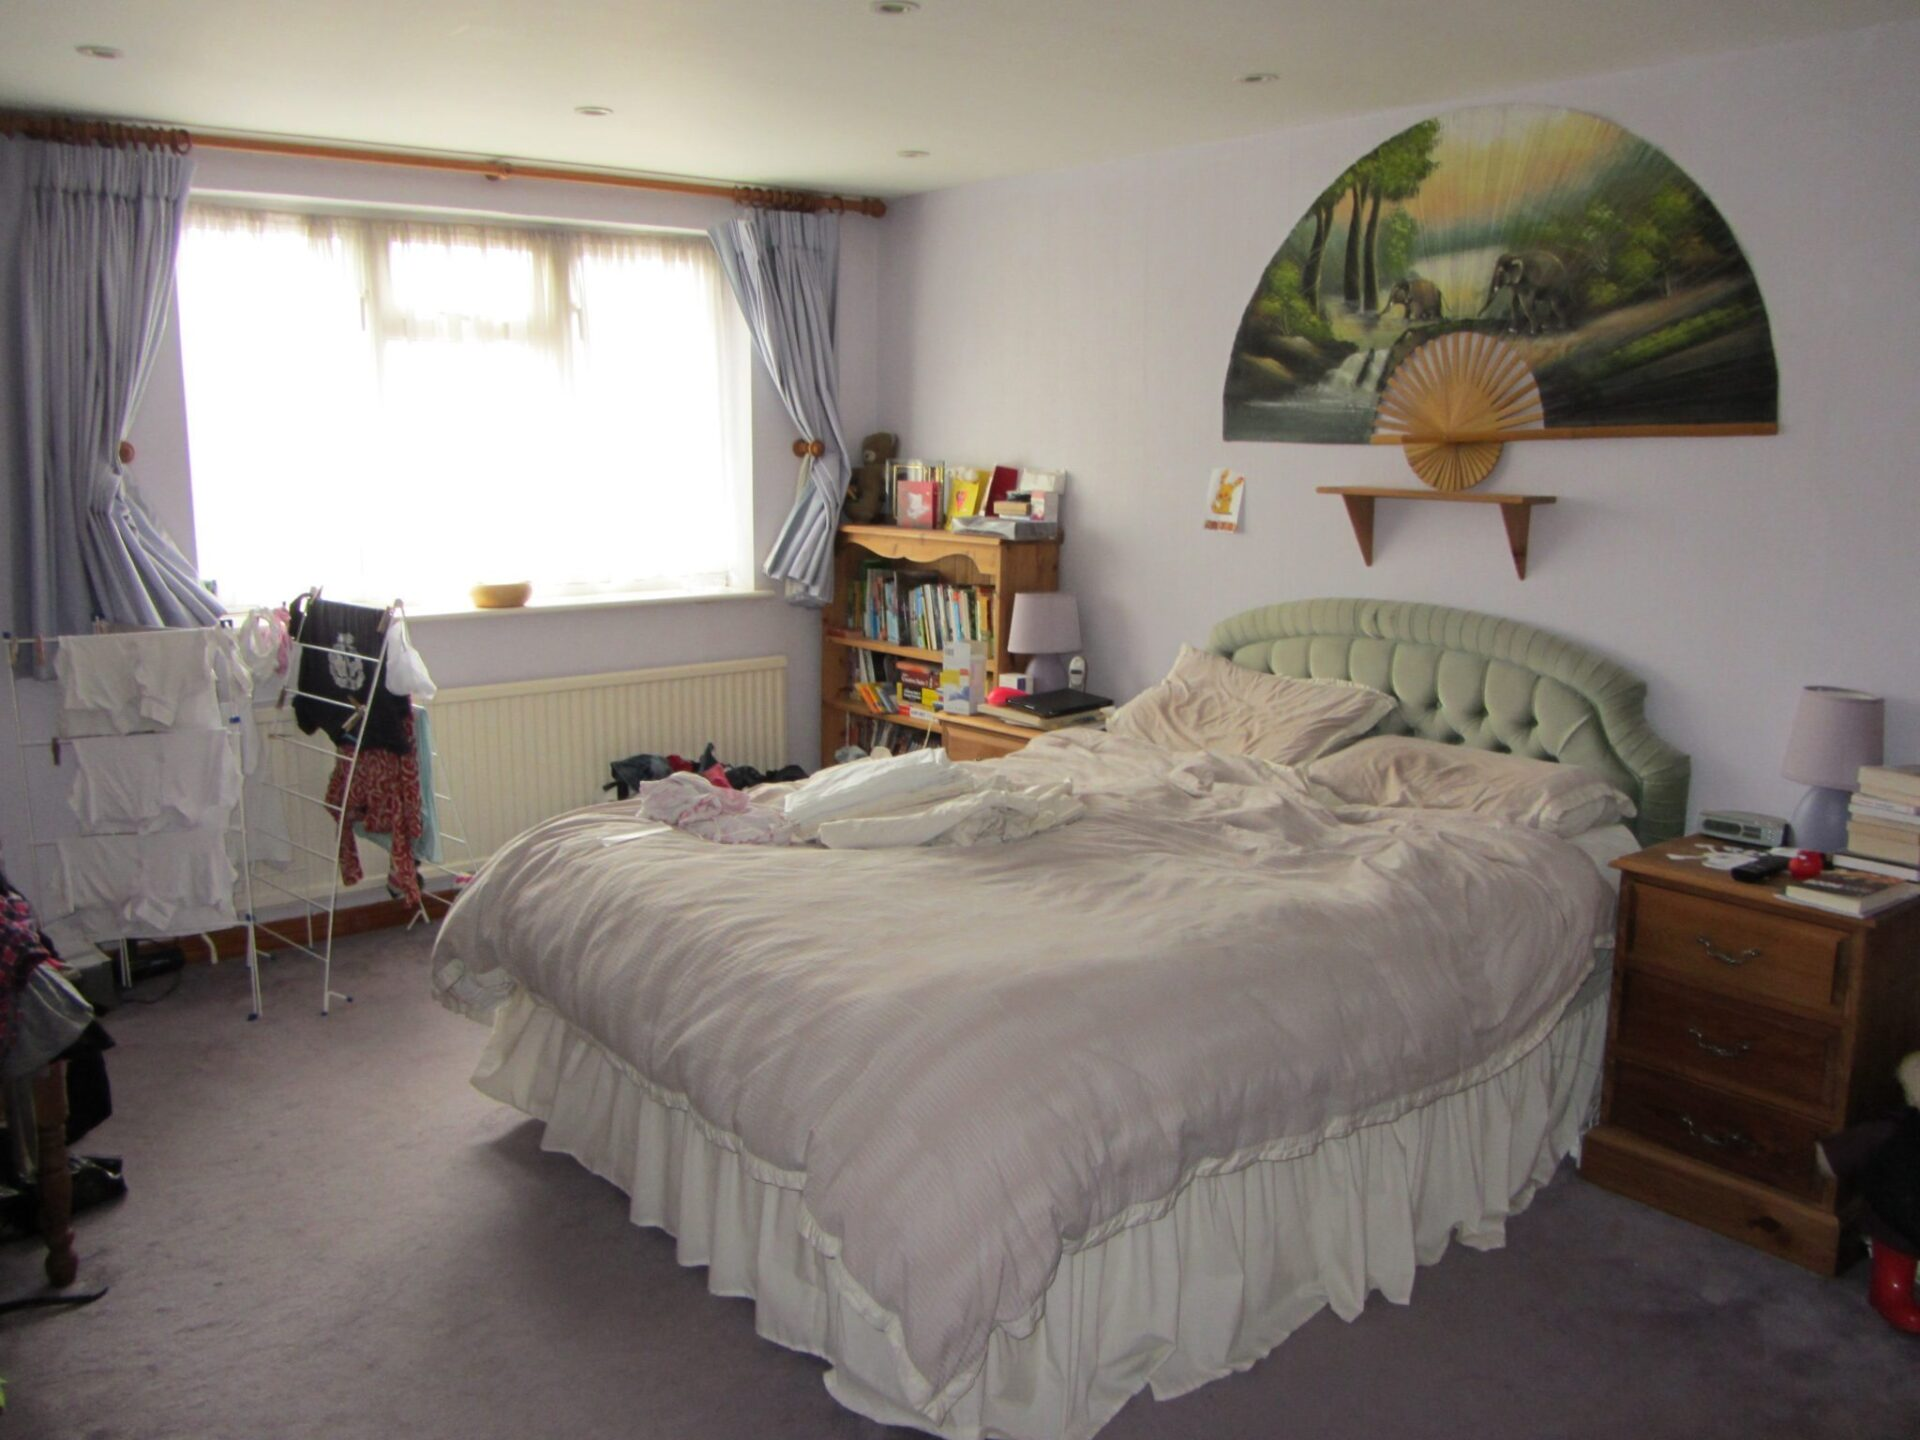 National Bed Month: Our Bedroom